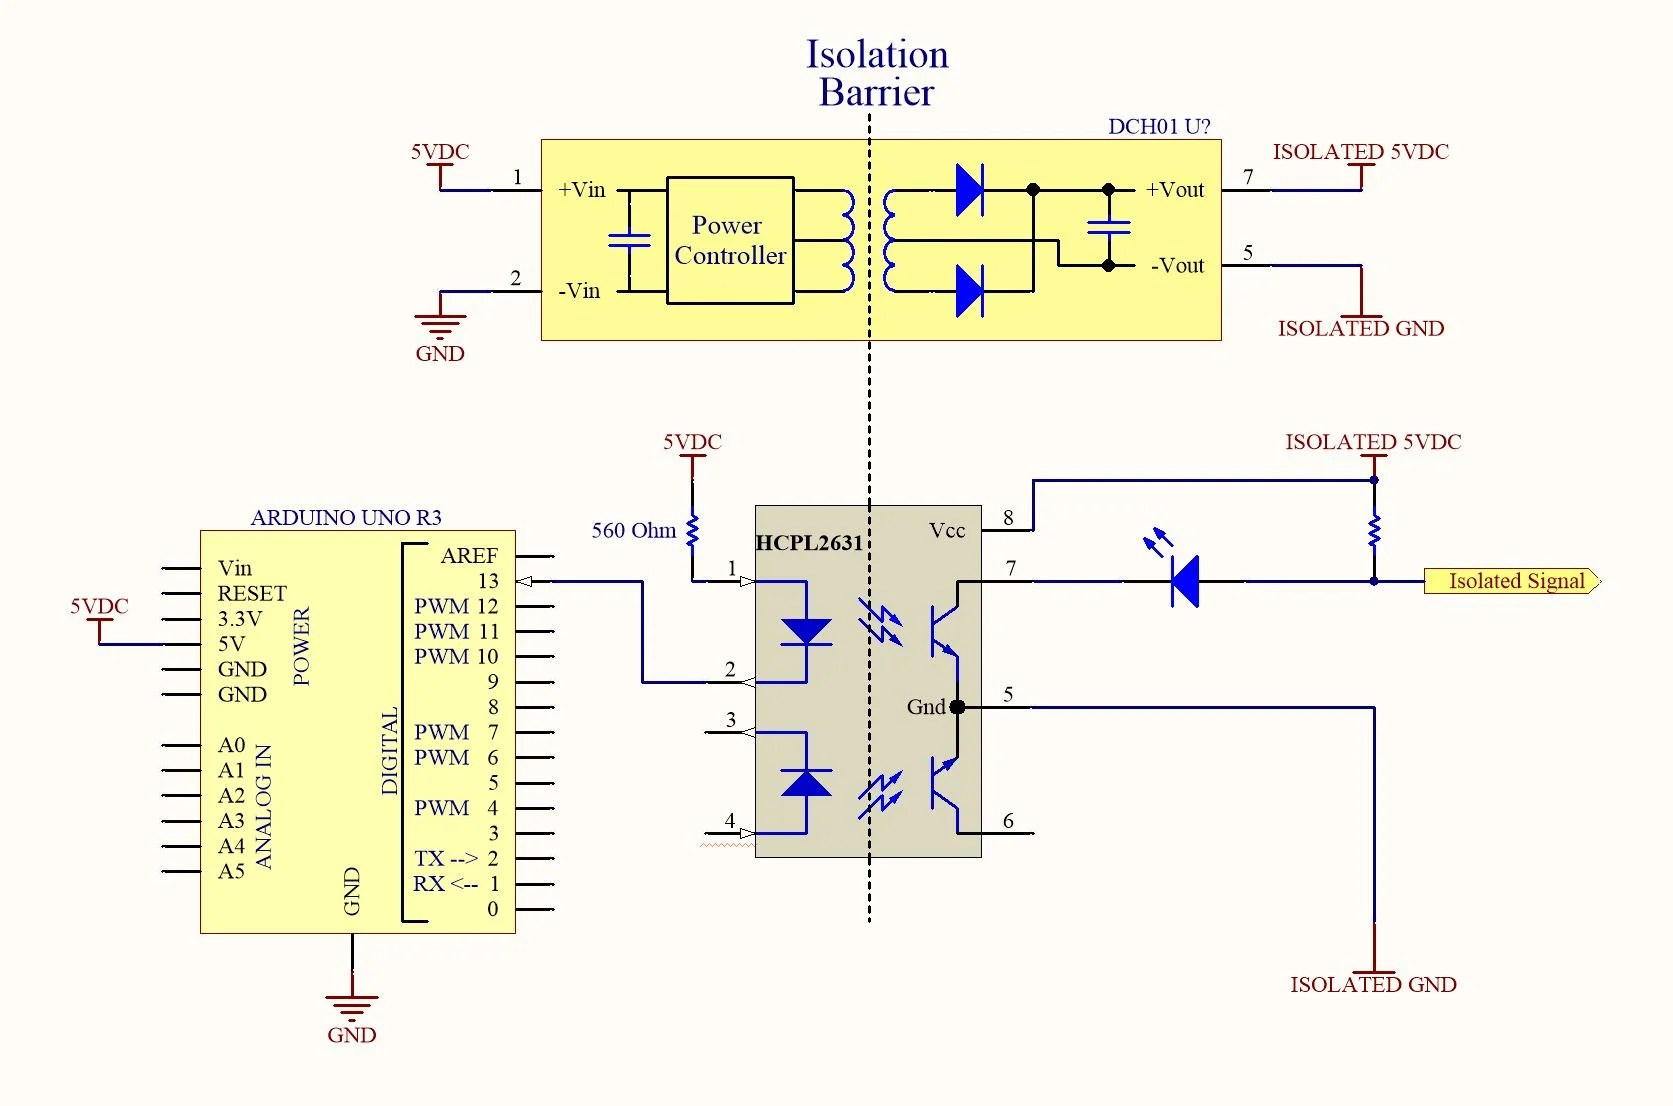 hight resolution of when the arduino uno sets pin 13 high no current flows through the input of the opto isolator and the isolated signal remains pulled high